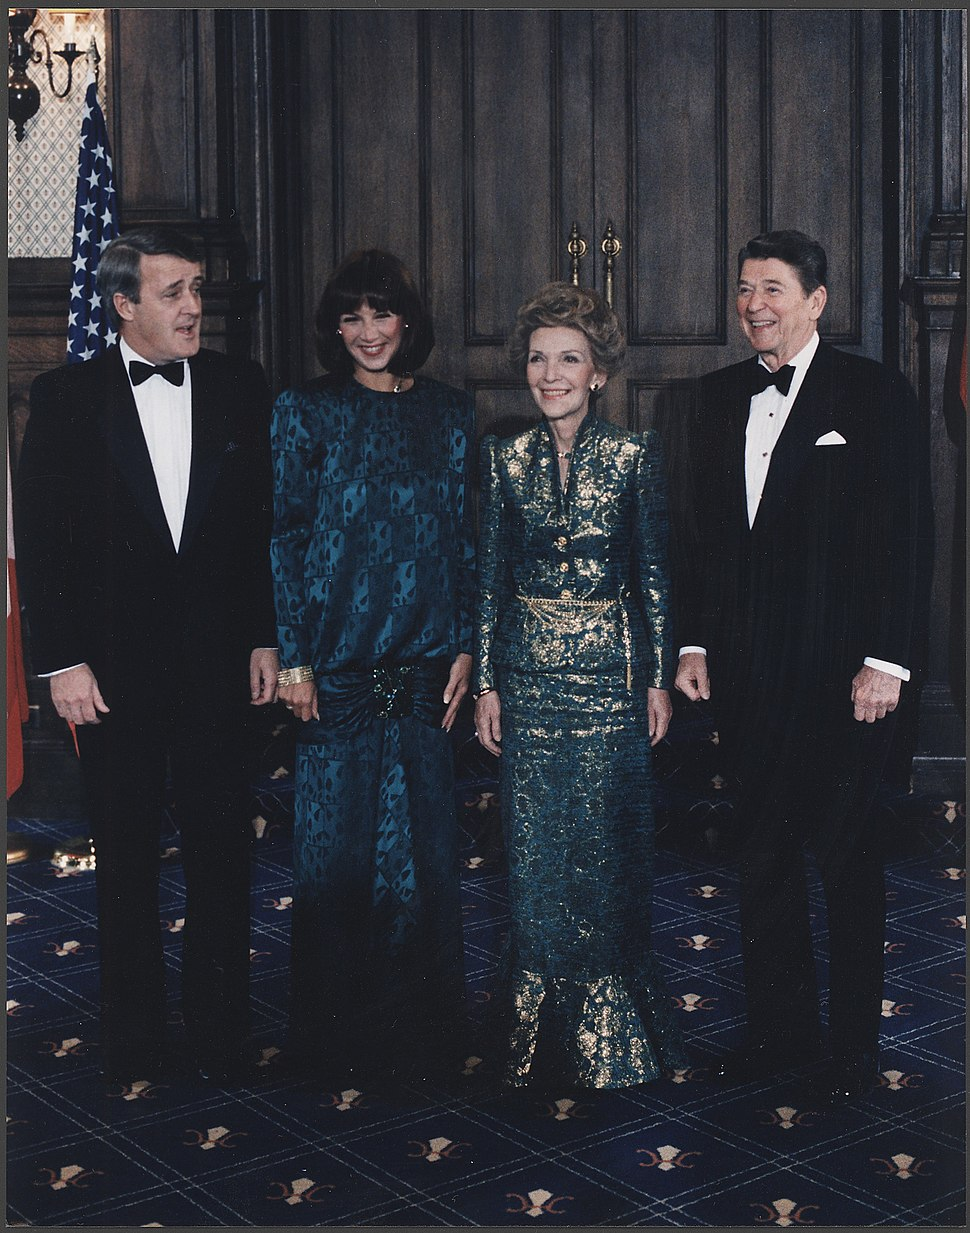 Photograph of The Reagans and Mulroneys in Quebec, Canada - NARA - 198561